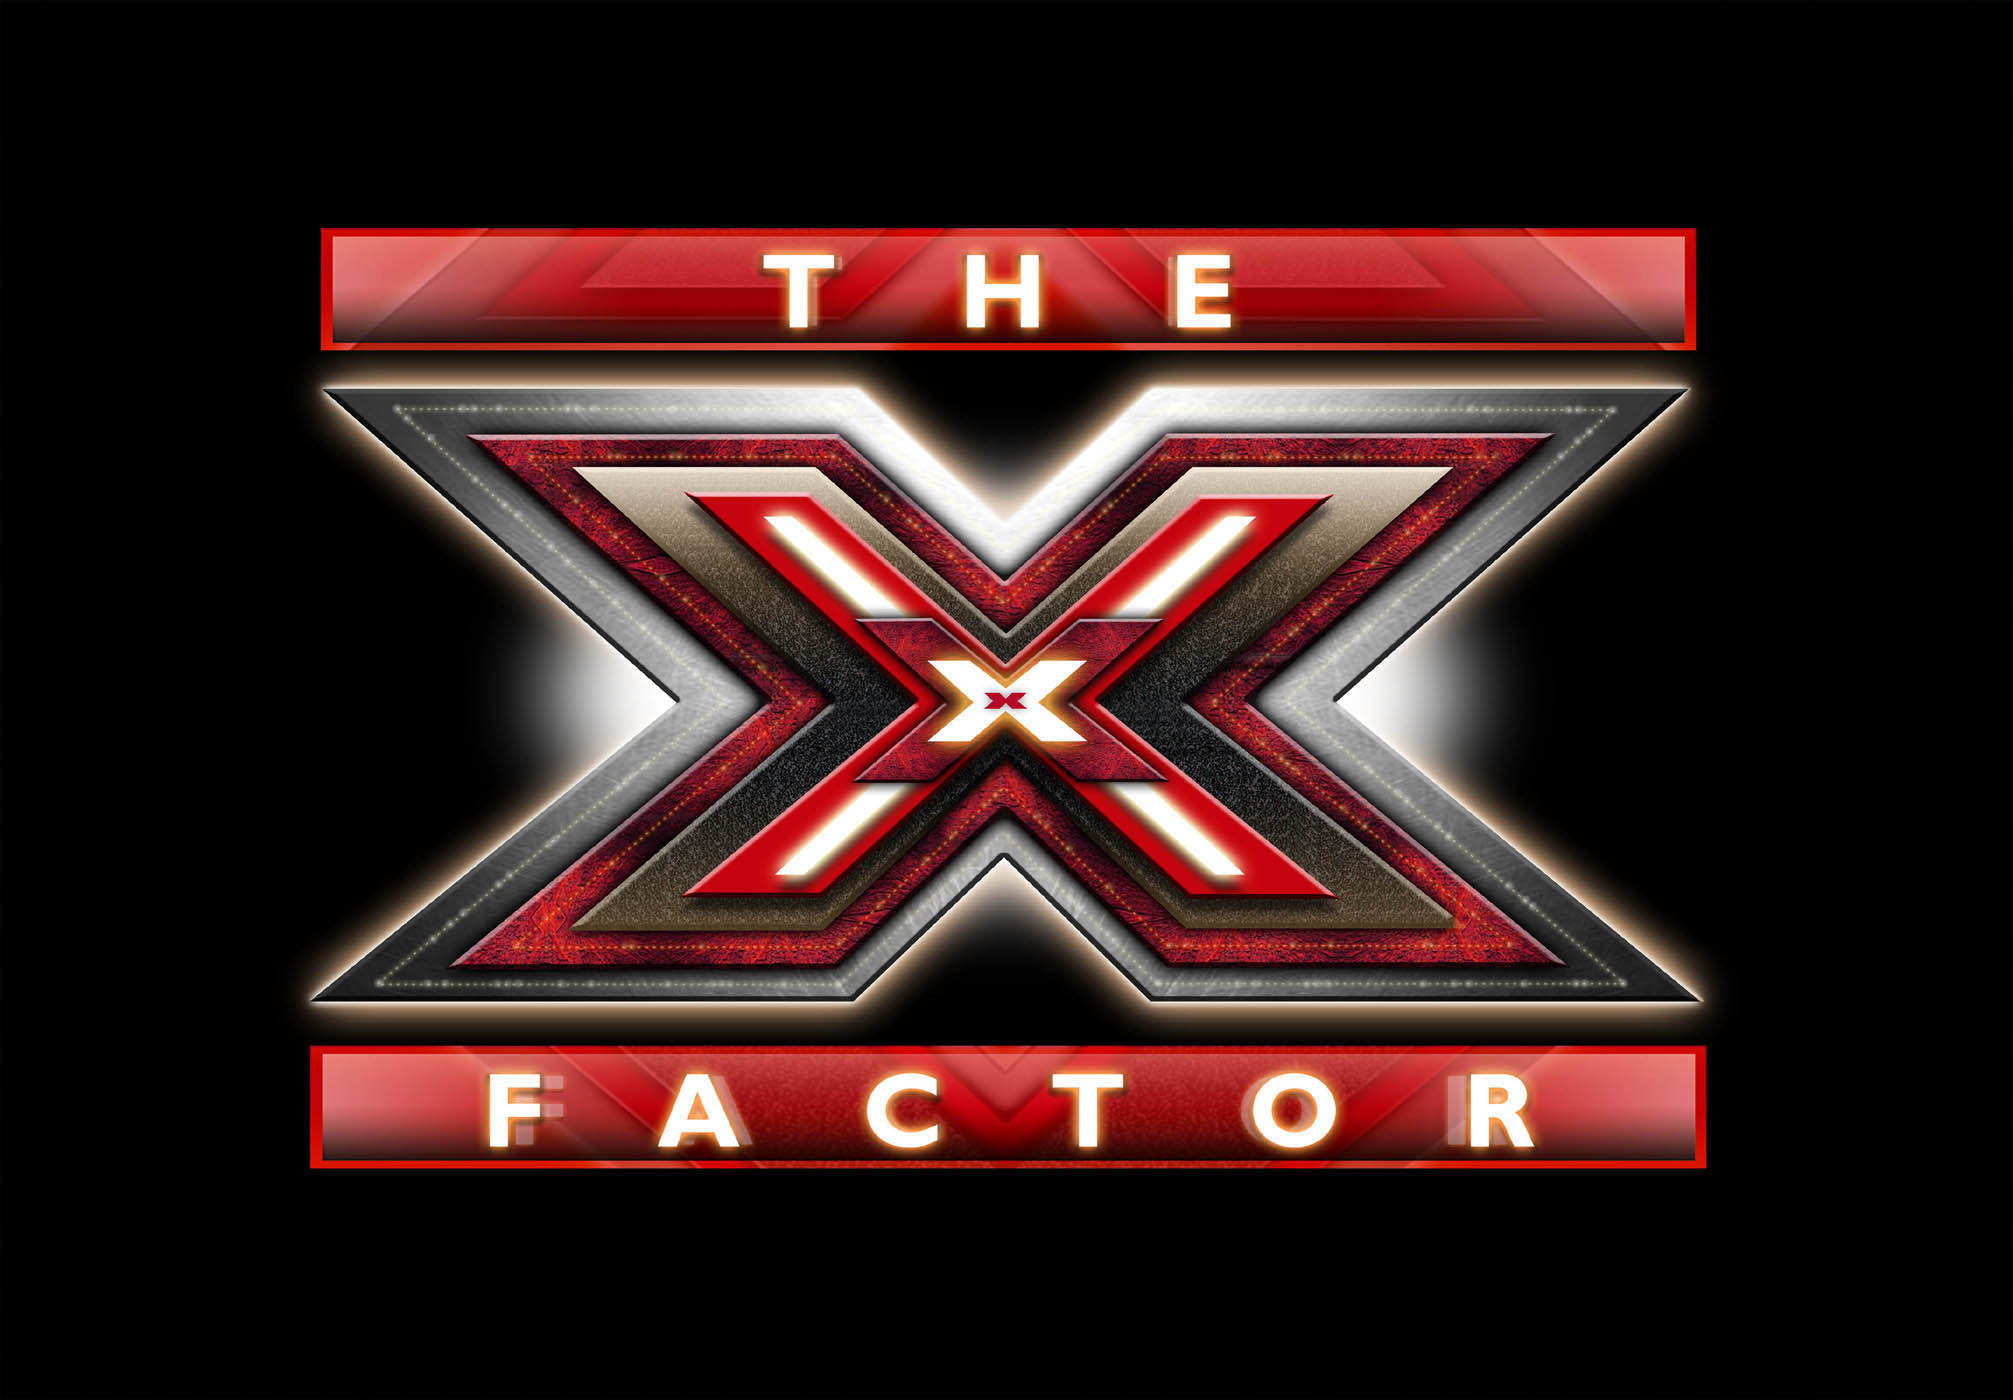 X Factor 'exploits' contestants, says Equity